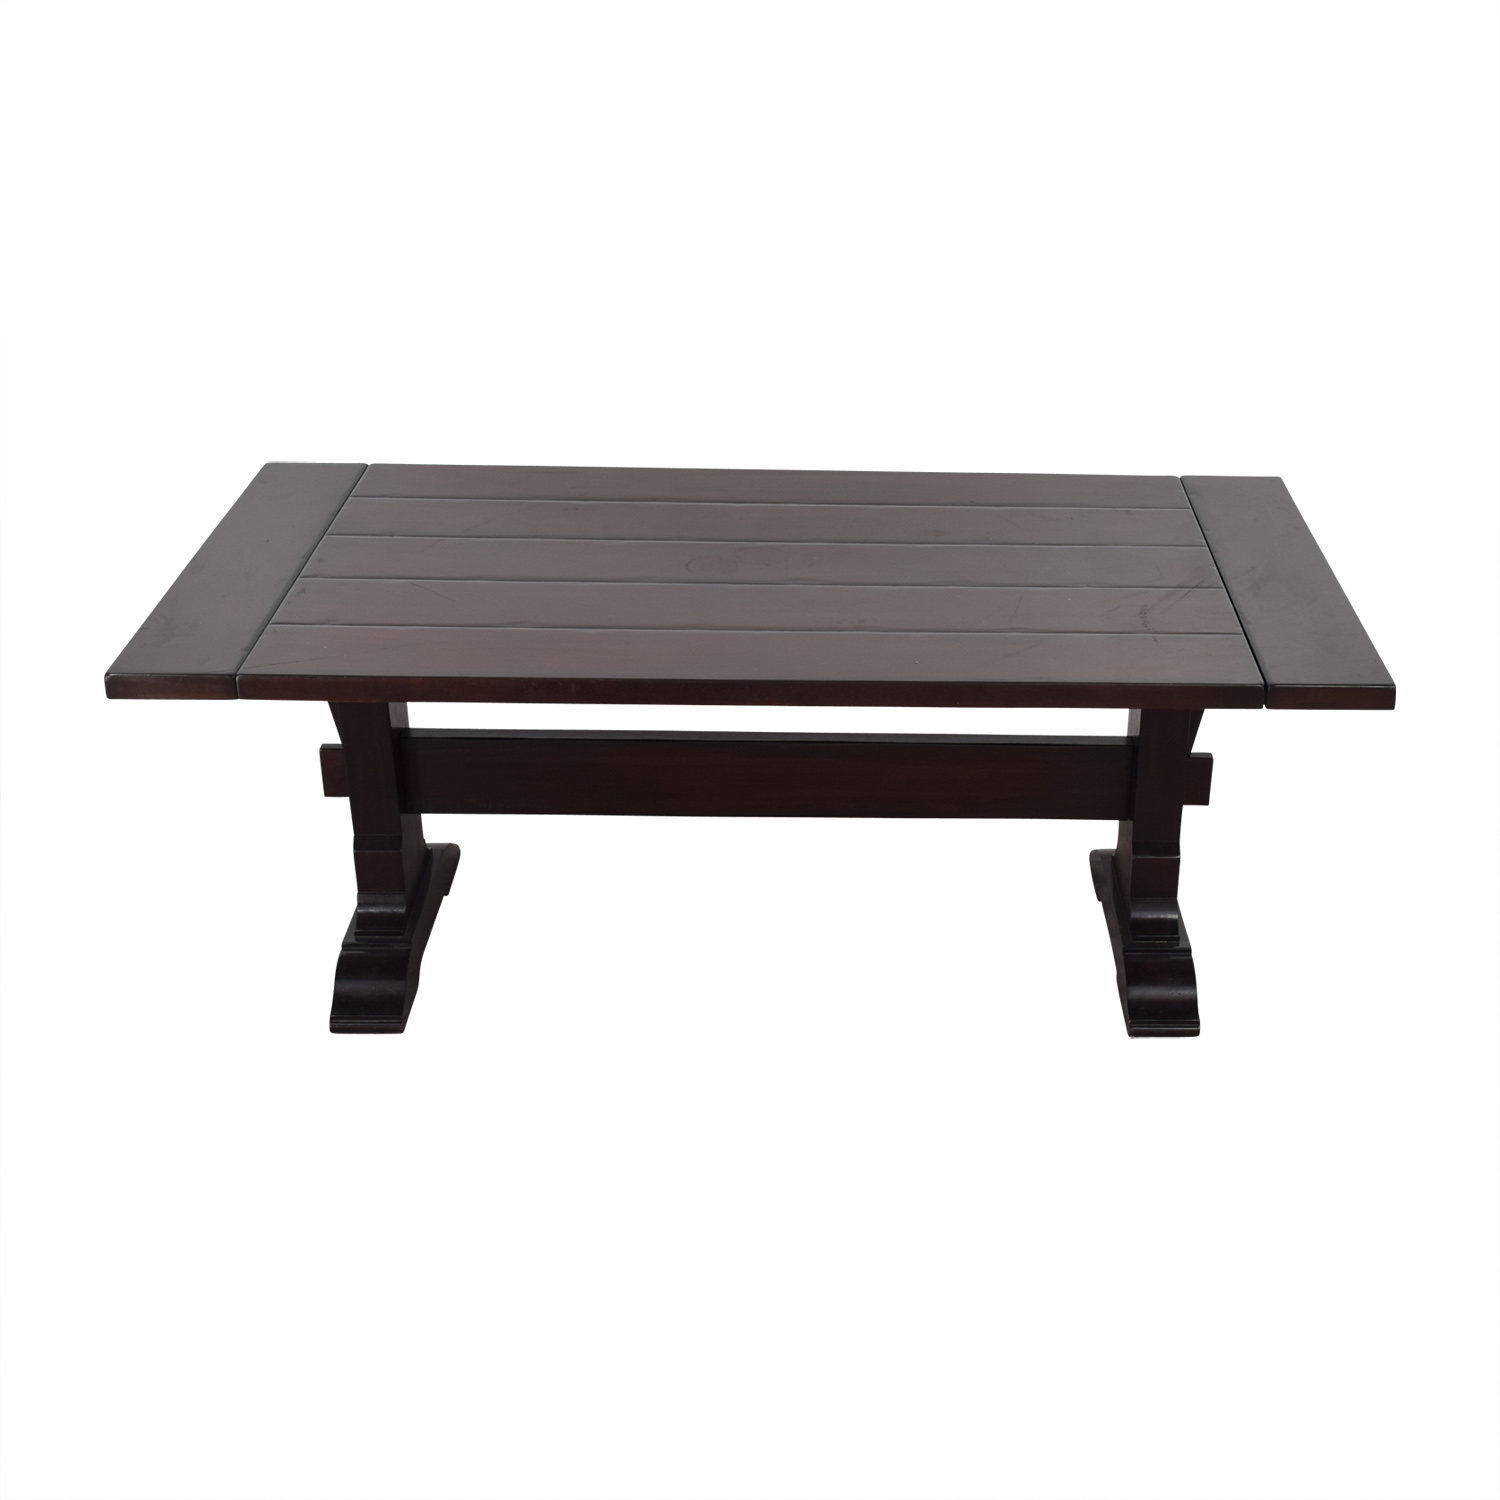 Pottery Barn Pottery Barn Extendable Wood Dining Table for sale